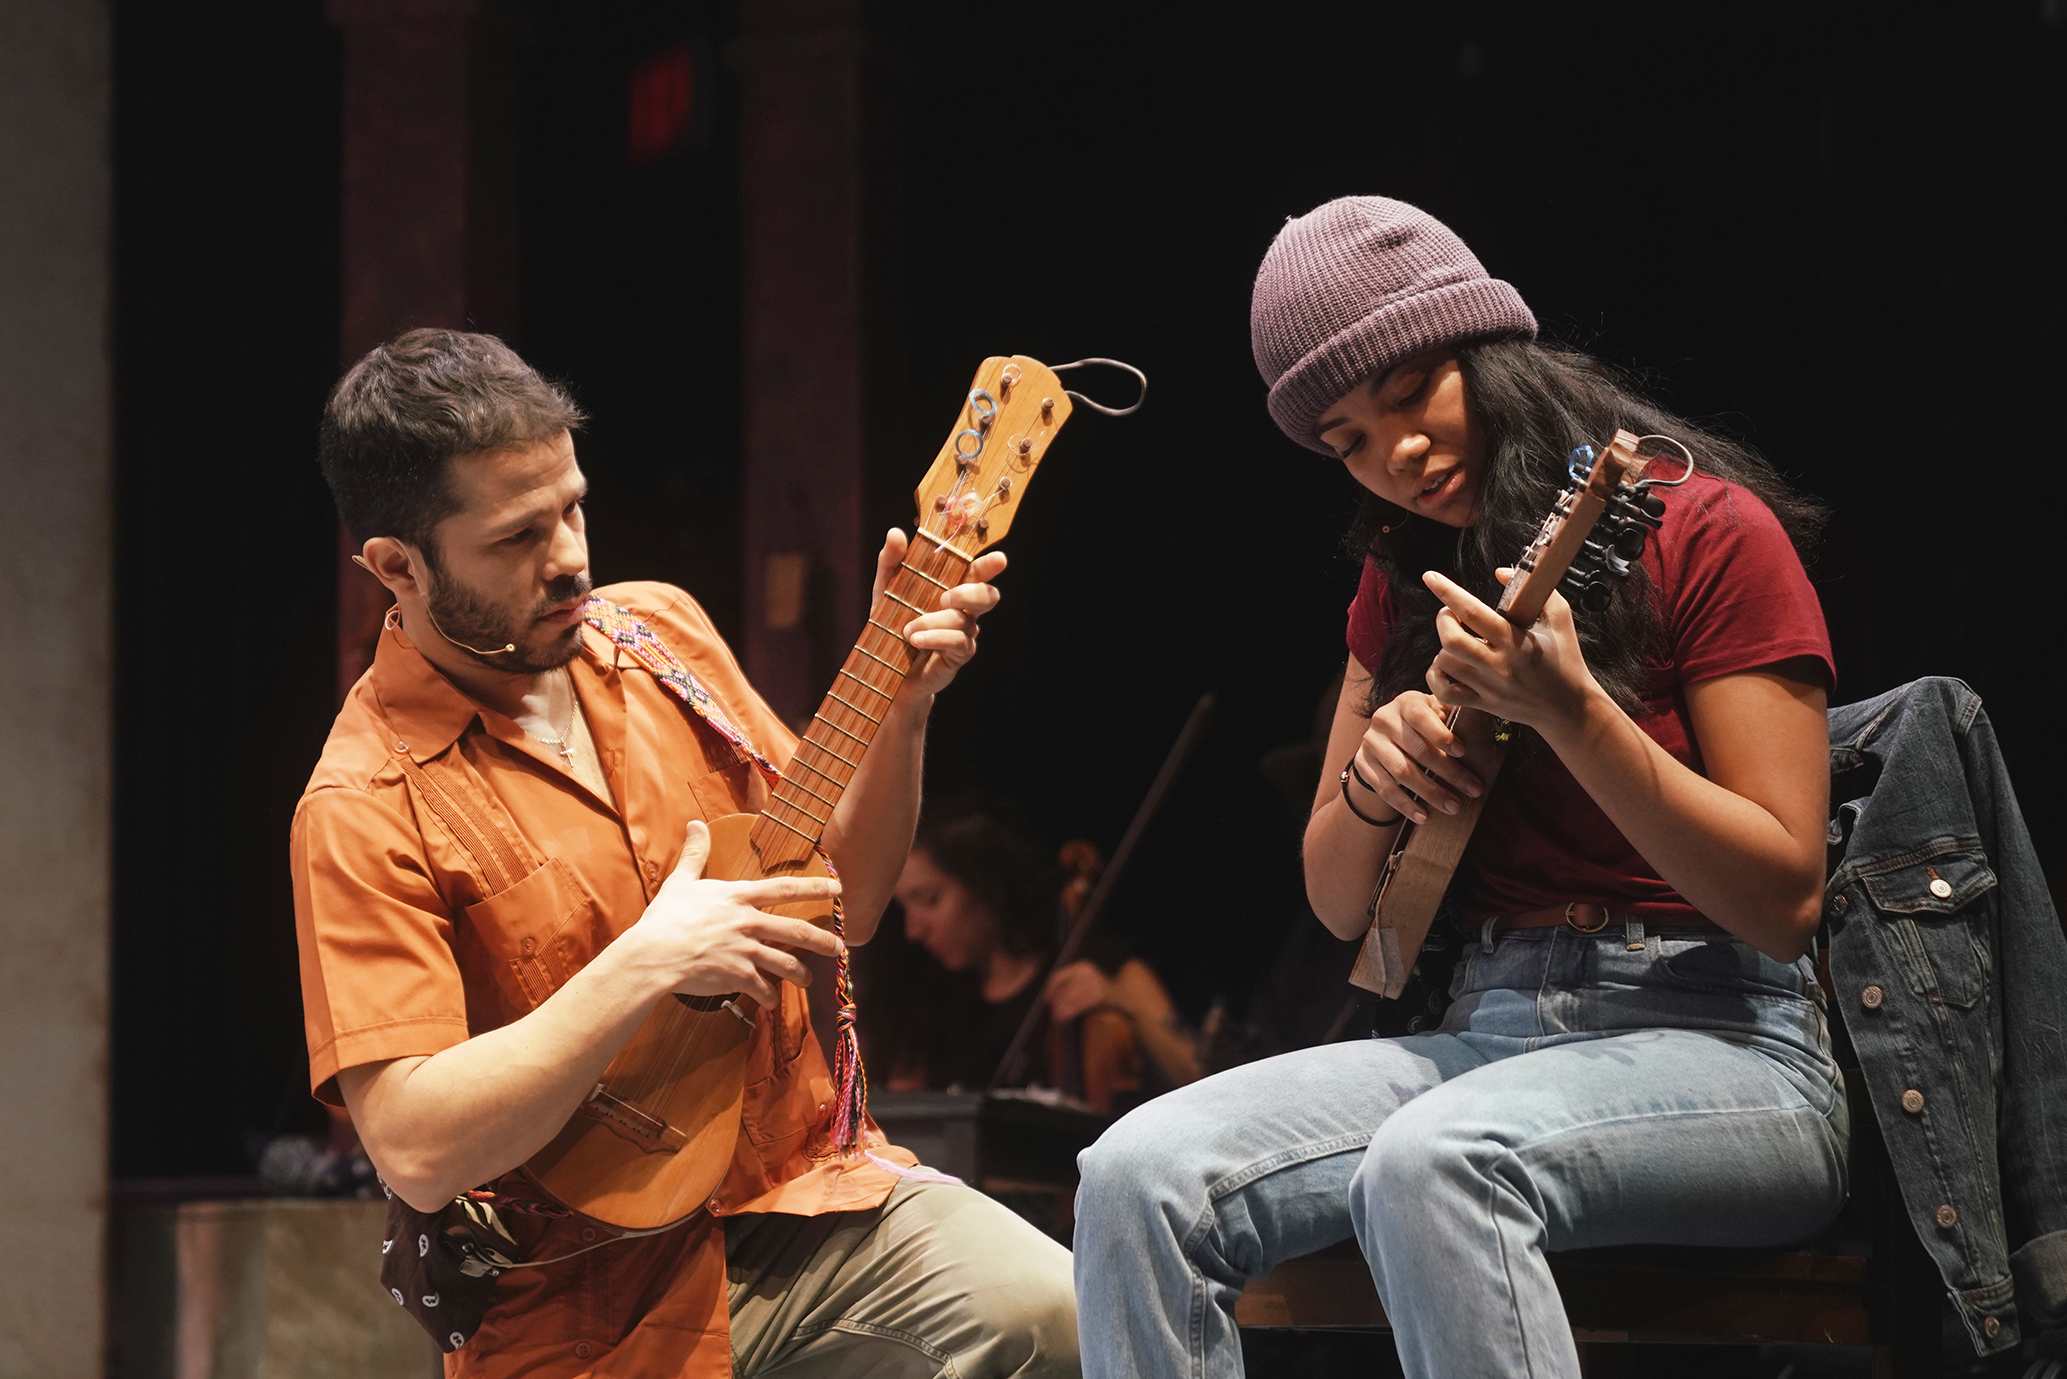 two people holding instruments